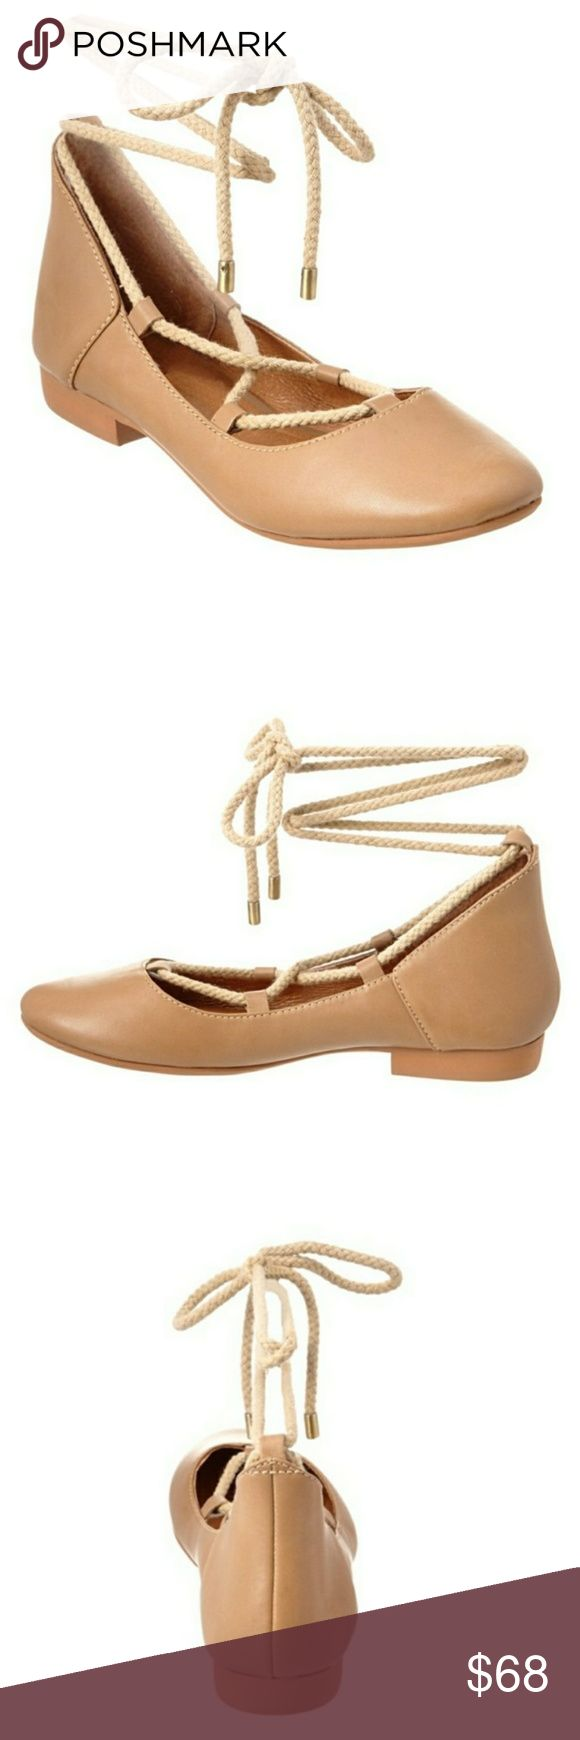 Kelsi Dagger Deandracf Leather Flat Kelsi Dagger  Color/Material: Camel Baby Calf Leather  Design Details: Gold-Tone Hardware  Lace-Up Closure  Lightly Padded Insole  Man-Made Sole  .75in Heel  Please Note: All Measurements Are Approximate And Were Taken From A Size 7.5; Slight Variations May Occur.  Imported  New in box Kelsi Dagger Shoes Flats & Loafers